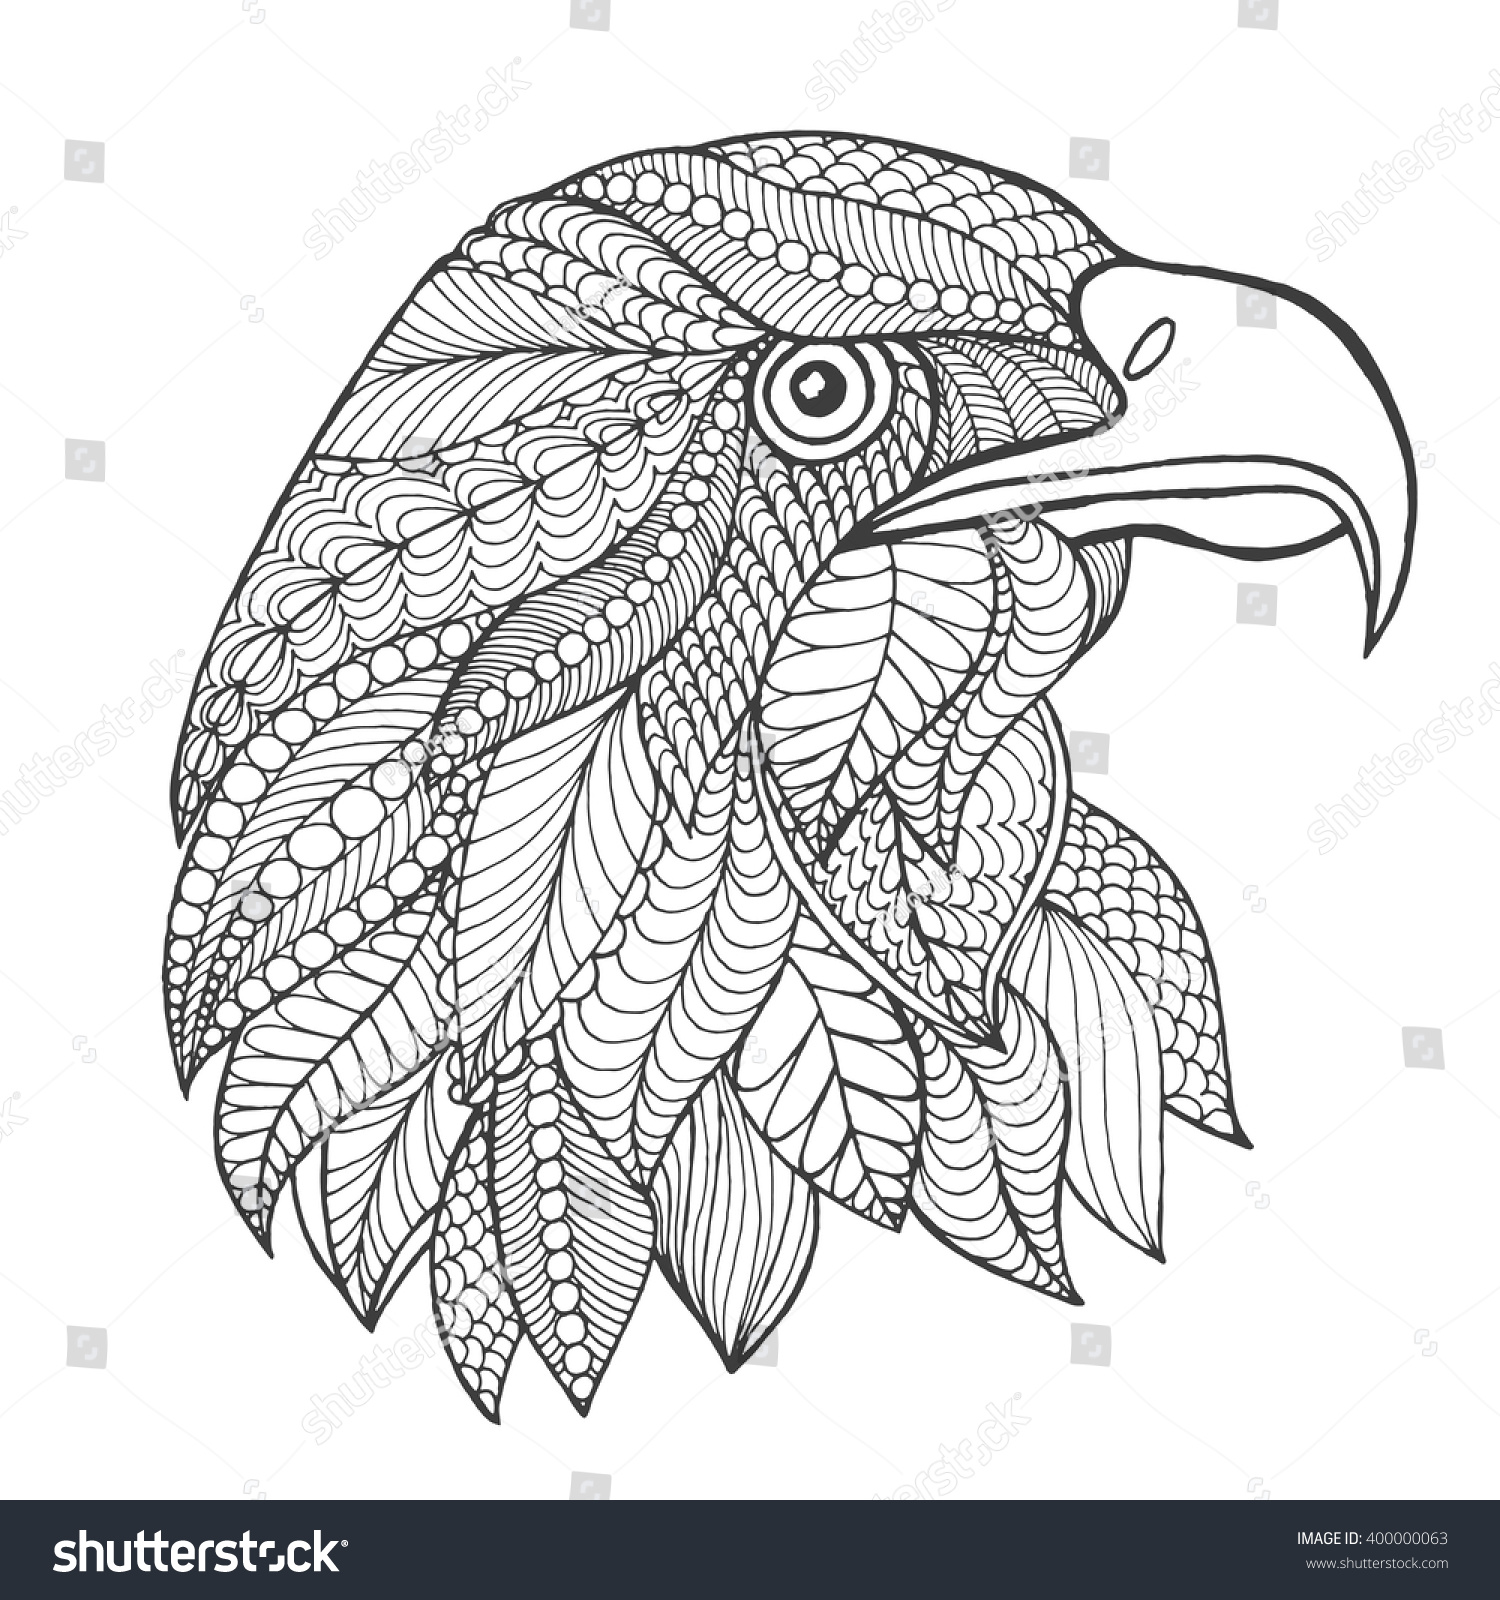 Eagle Head Adult Antistress Coloring Page Black White Hand Drawn Doodle Animal Ethnic